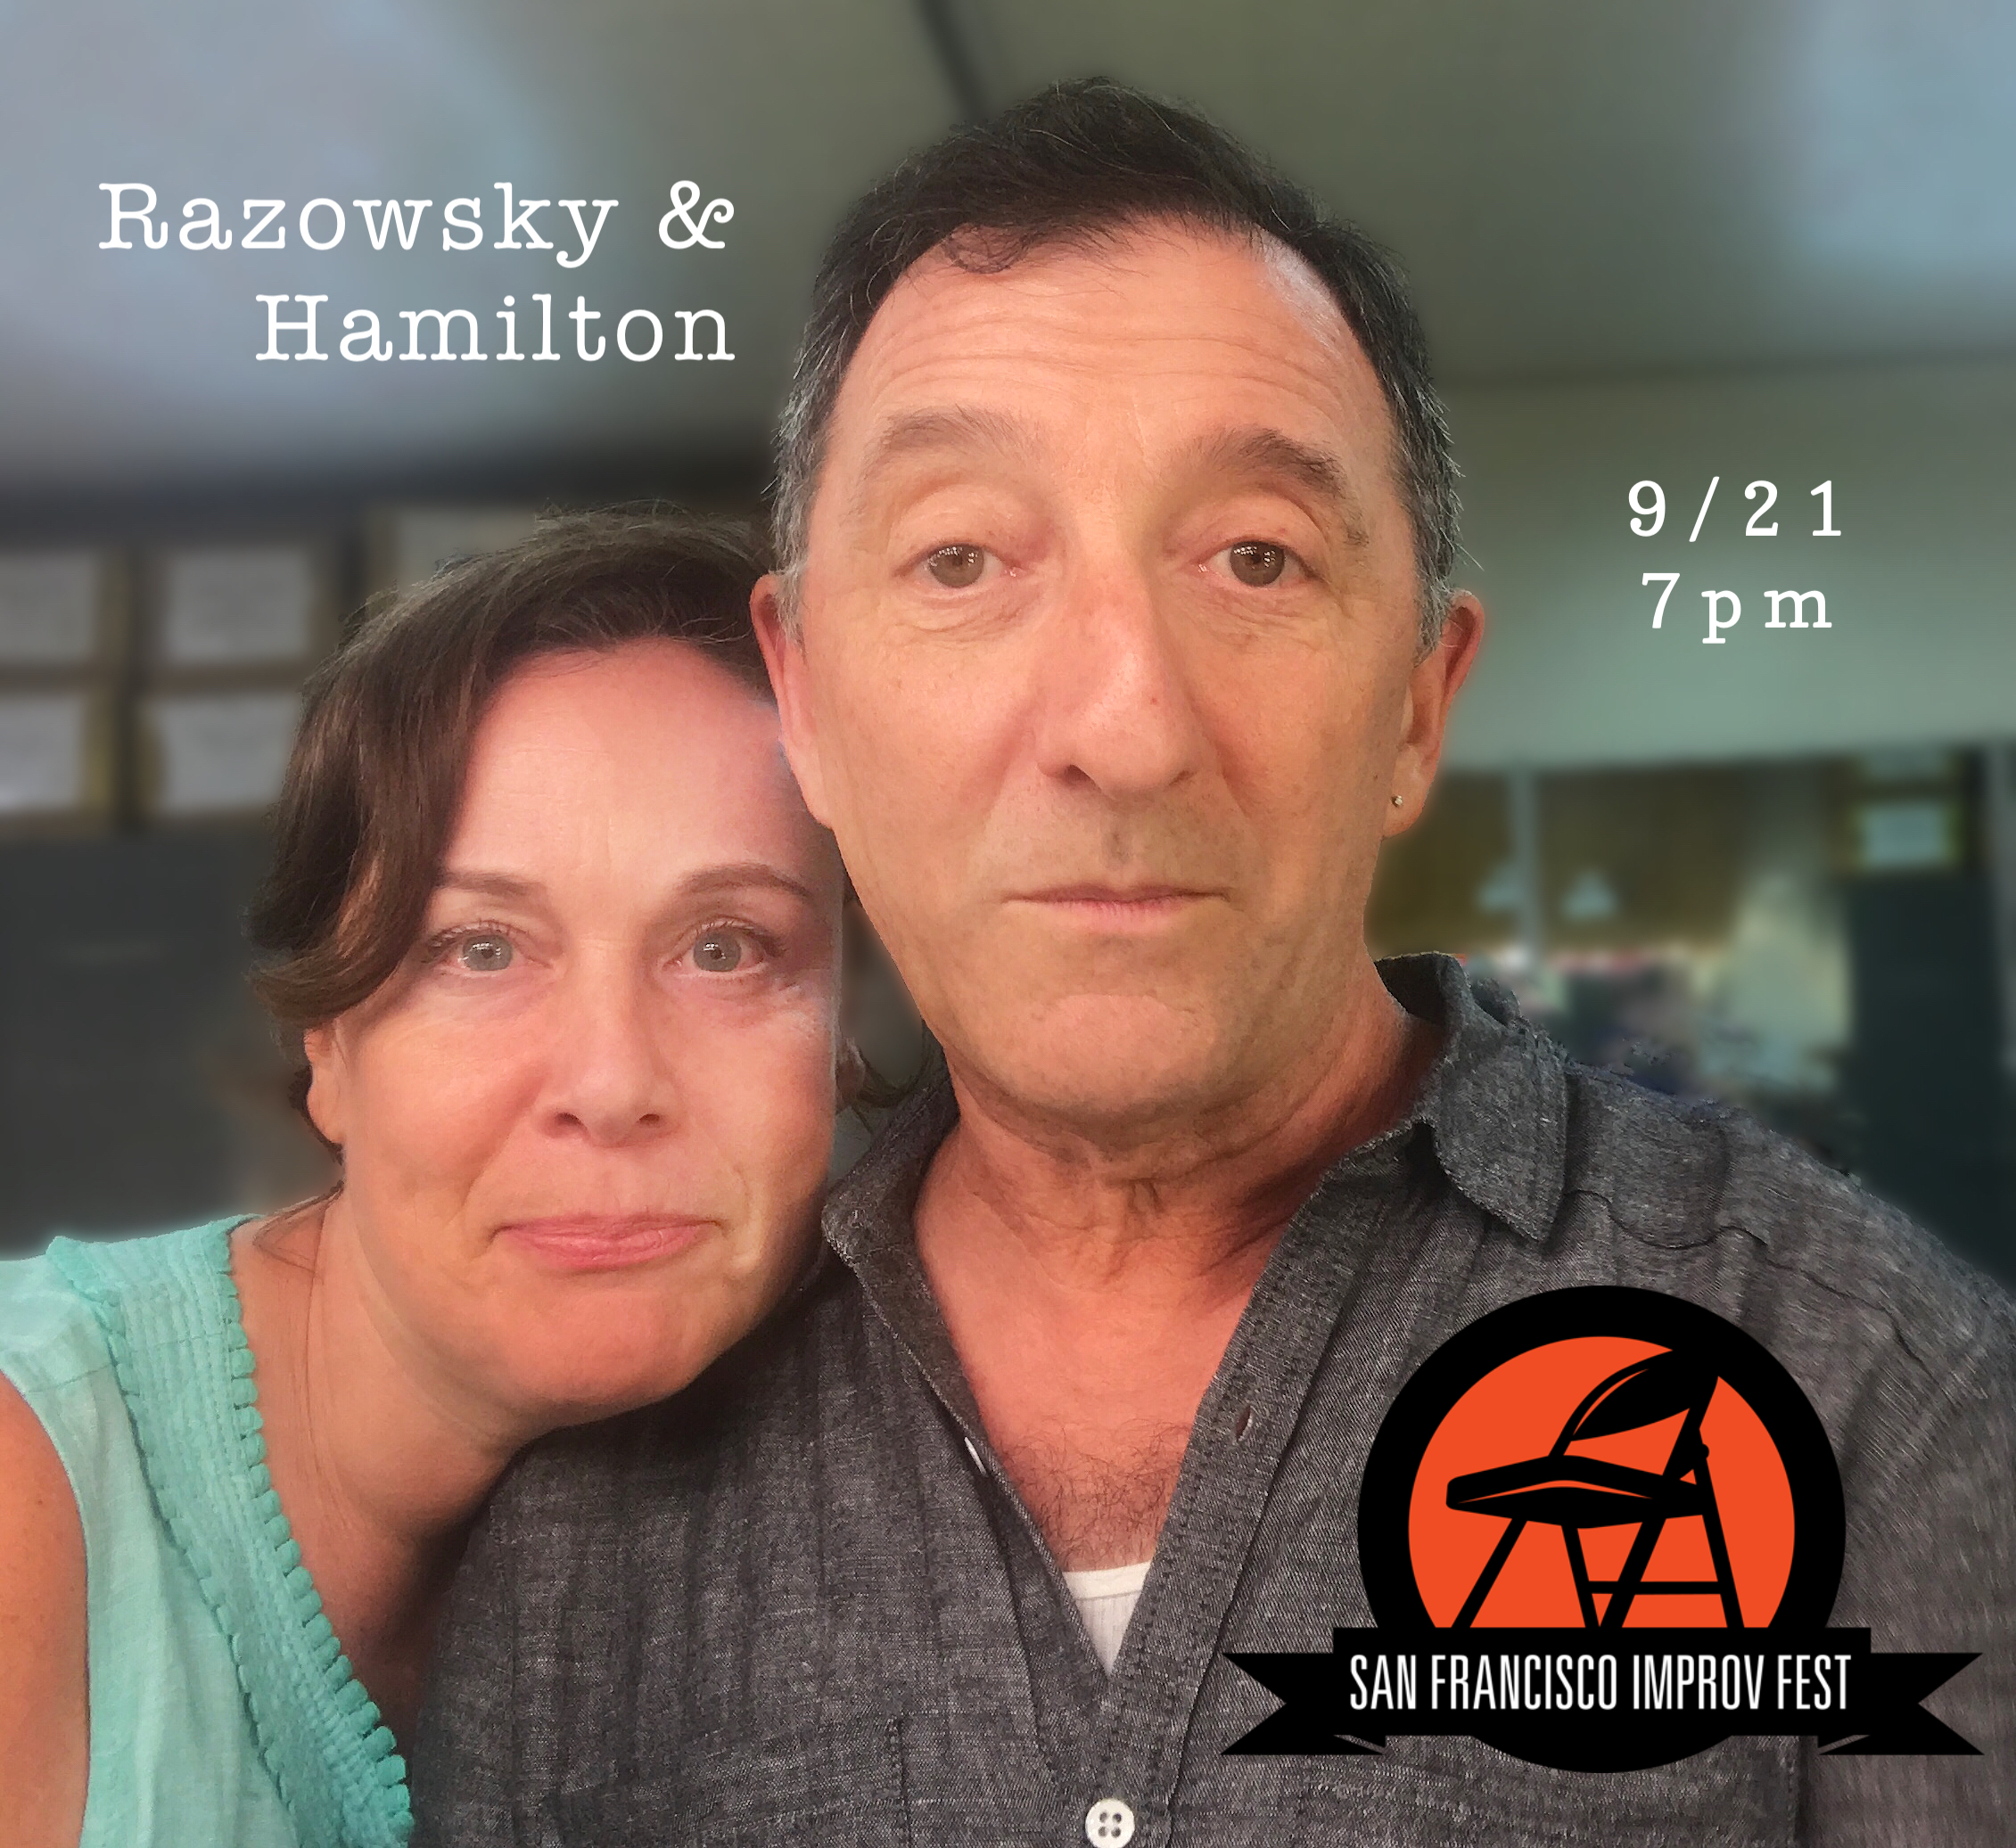 Razowsky & Hamilton's David Razowsky and Rachel Hamilton are both alumni of The Second City Mainstage and renowned teachers of Improvisation.  In fact, if you added up the combined hours they have spent performing and teaching Improv and then assigned a tangible unit to represent each hour – let's say a lemon – and then you lined up those lemons, well, let's just say you would have a whole lot of lemons on your hands. Now, if you wanted to go the extra mile and see how many times those lemons could circle the earth, you sure would have a helluva time because they would keep rolling away, being round(ish) and all.  And while you are doing all that, David and Rachel are going to improvise a show and get a couple more lemons for your project.   Featured Cast: David Razowsky & Rachel Hamilton   SHOWTIME: Friday, September 21st, 7:00PM with  The Trifecta